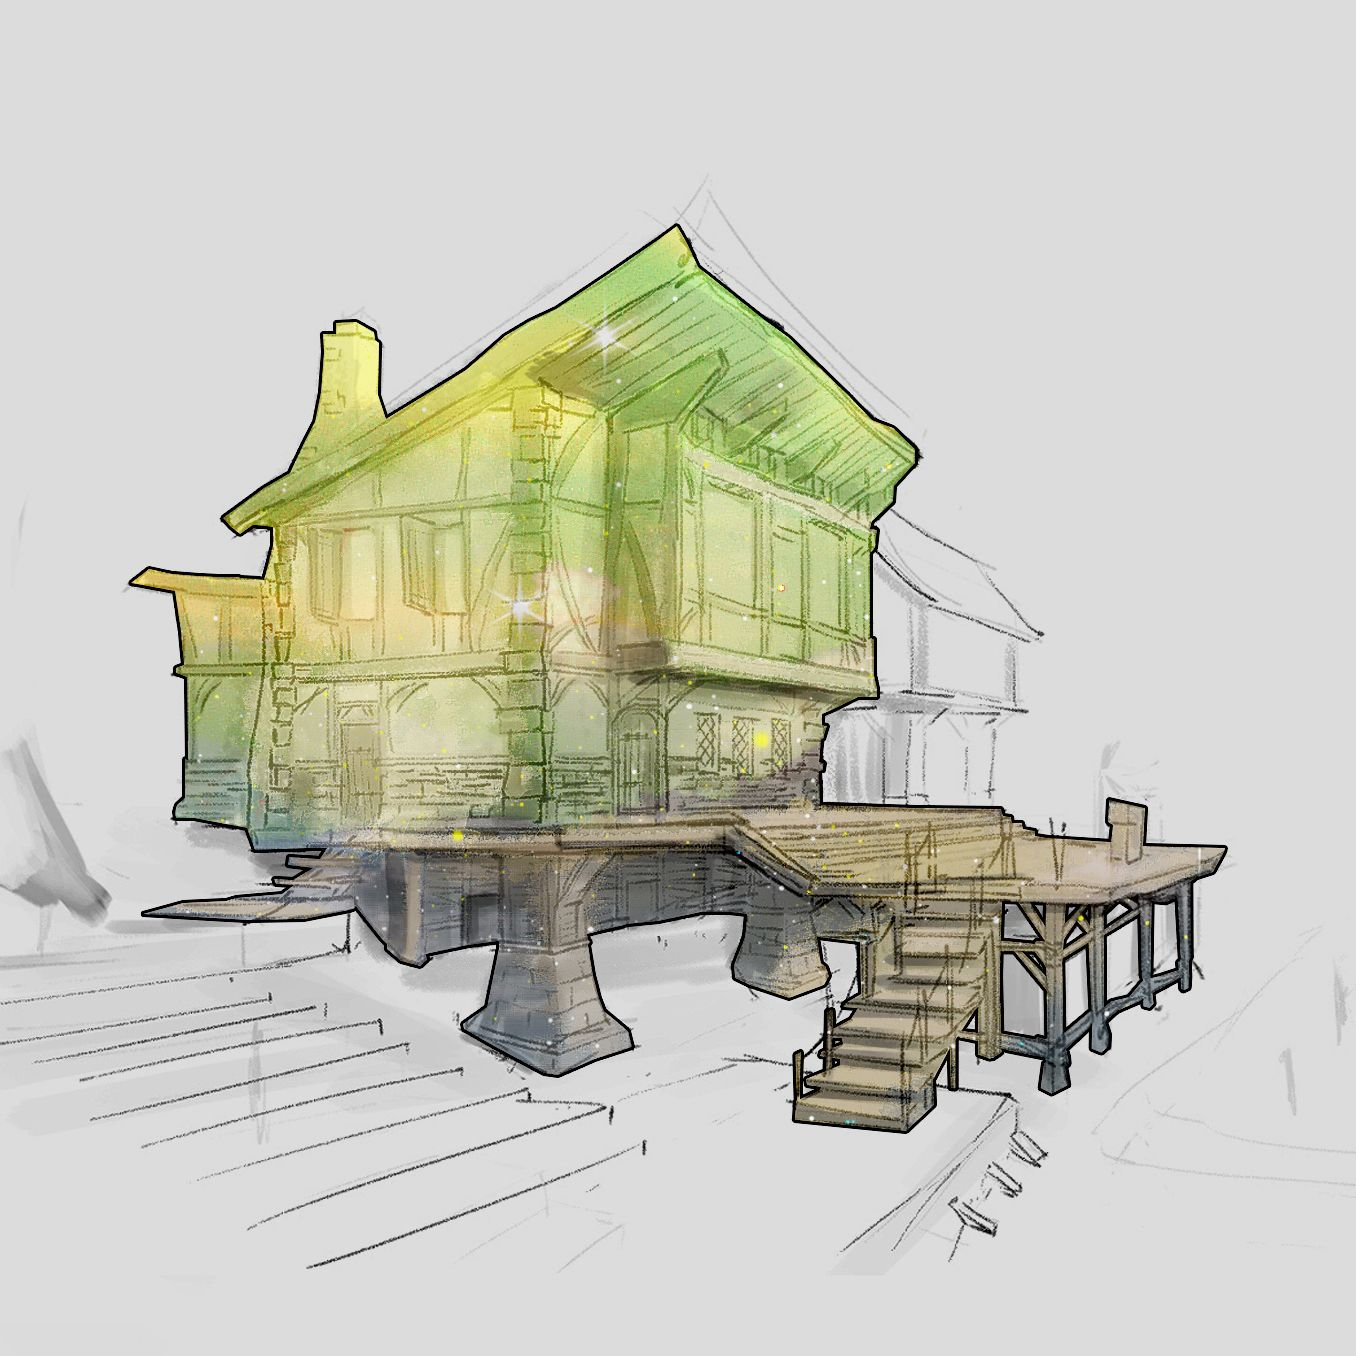 #art #artwork #architecture #sketch #design #illustration #drawing #photoshop #cs6 #건축스케치 #그림 #fantasy #conceptart #rough #game #gameart #perspective #스케치 #배경원화 #지제이 #color